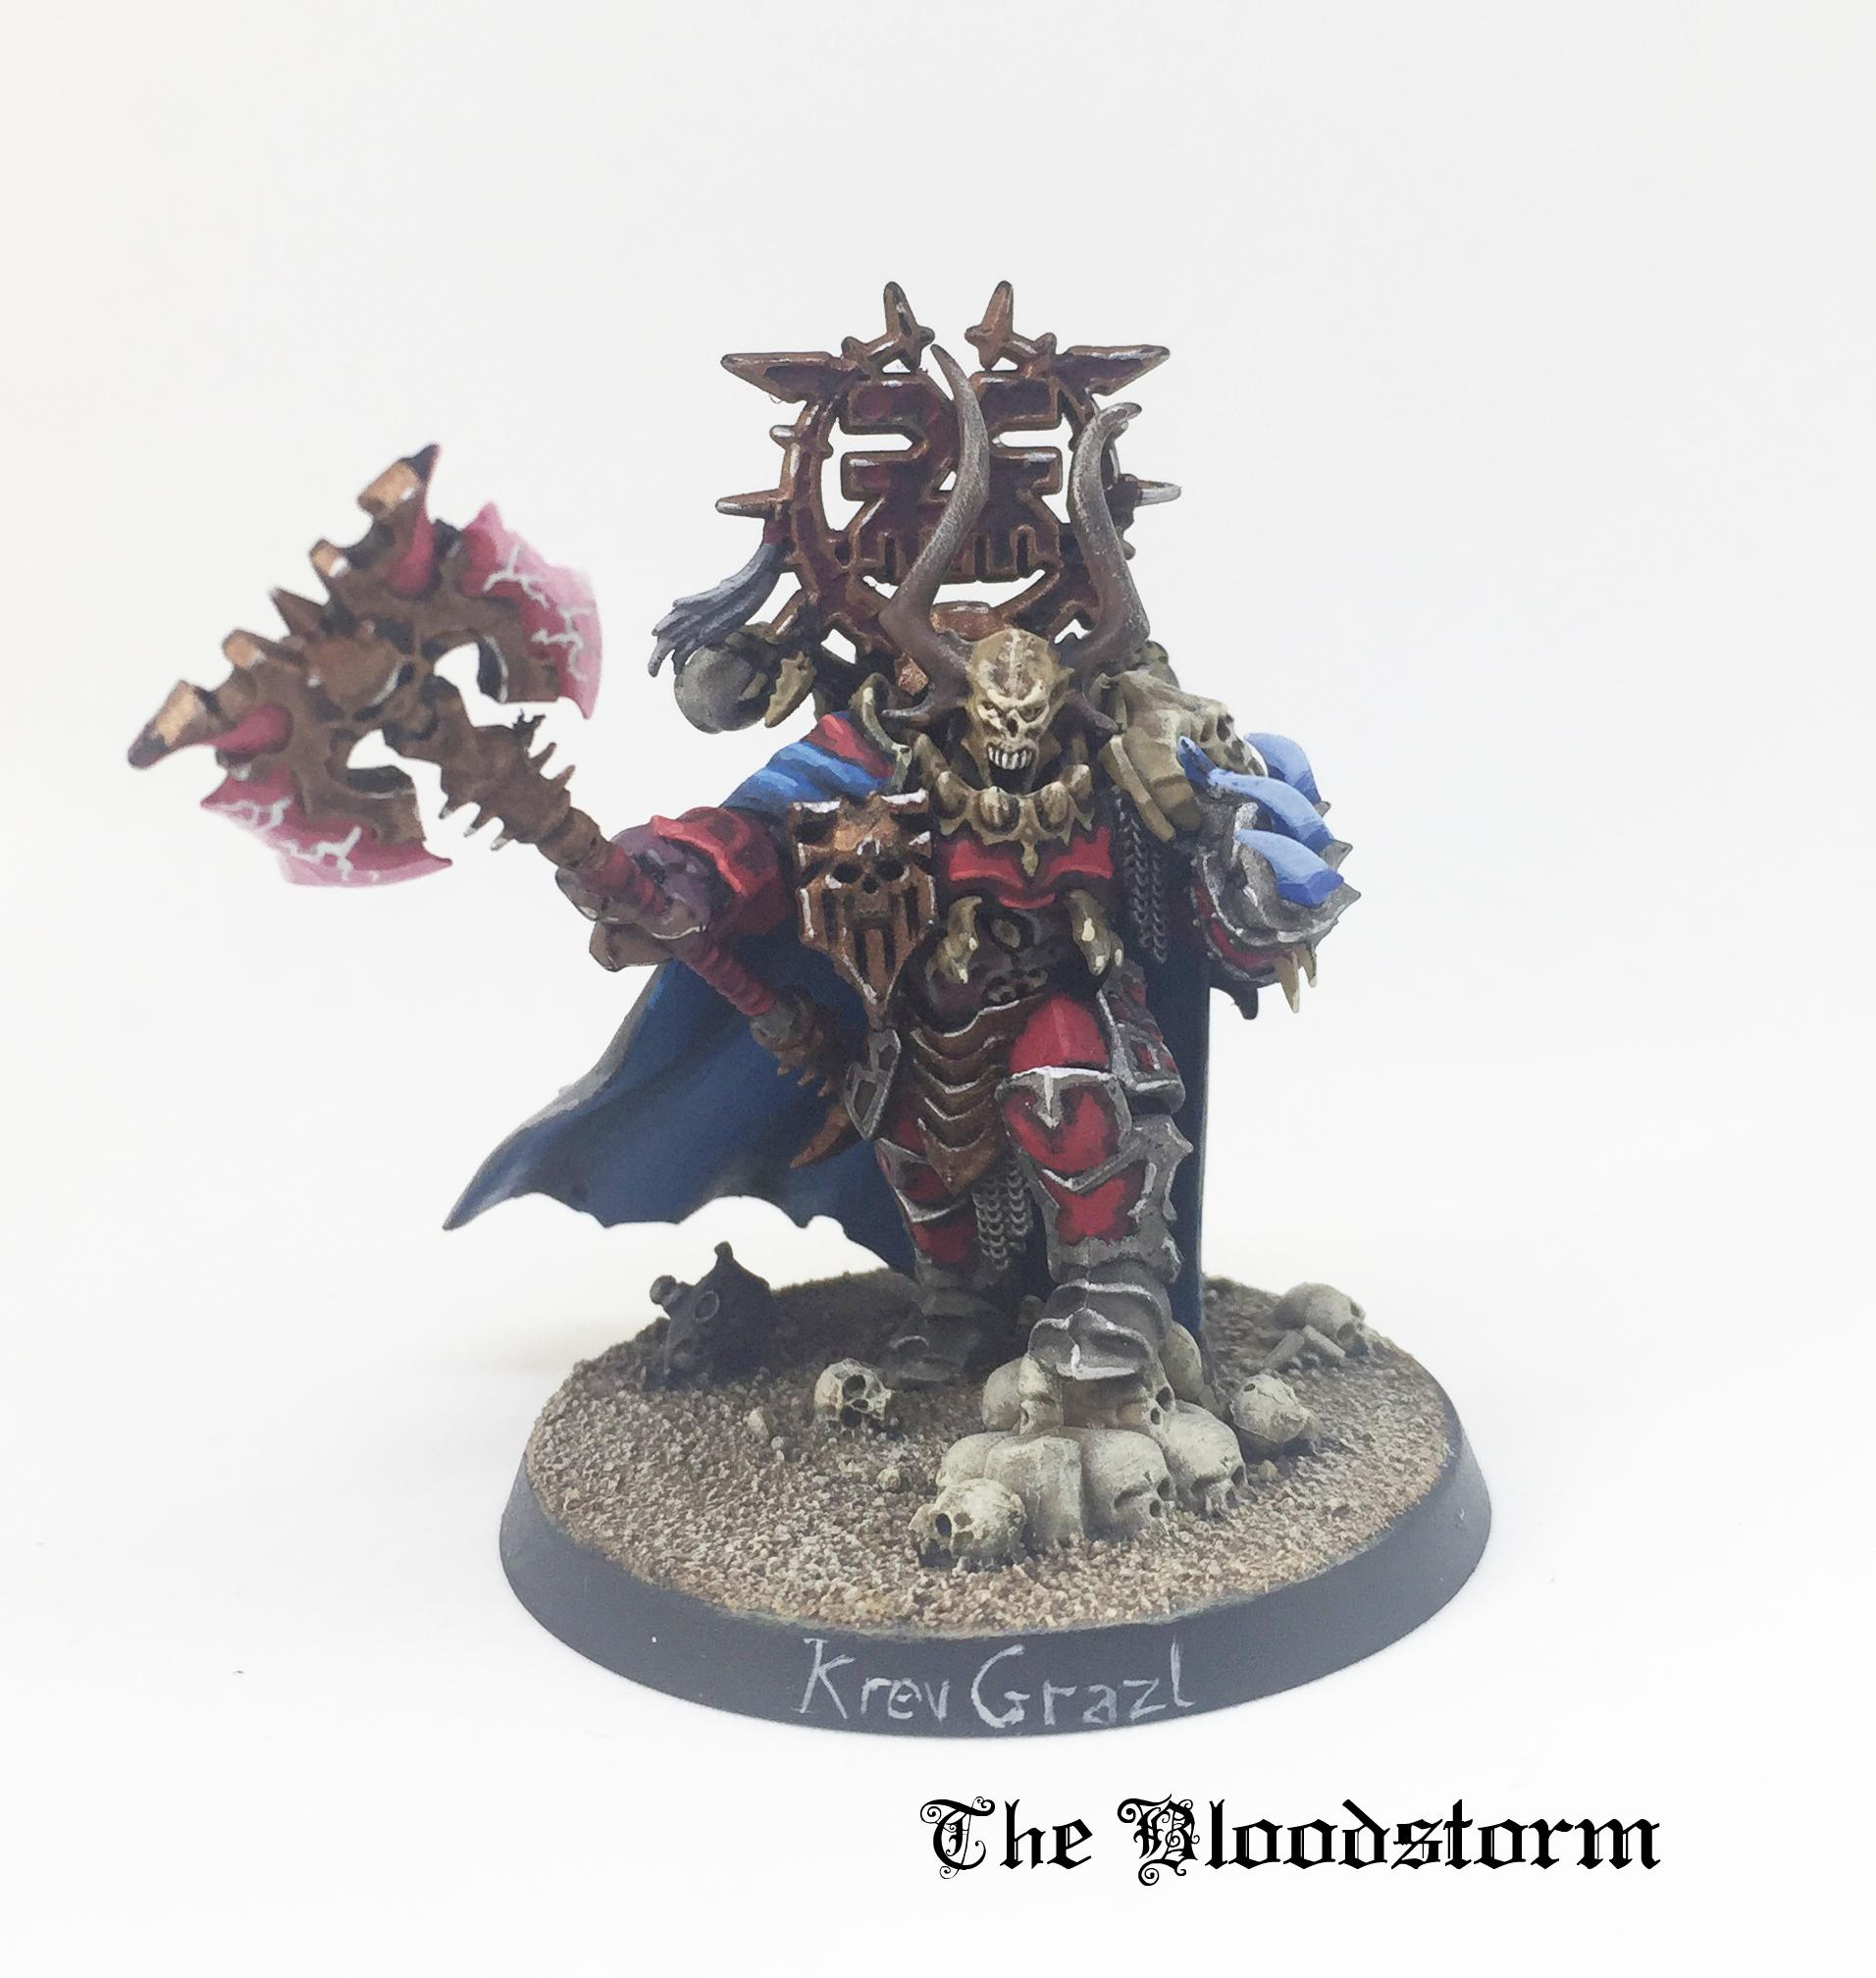 Champion, Chaos Lord, Chaos Space Marines, Khorne, Khorne Daemonkin, Kitbash, Lightning Claw, Warhammer 40,000, World Eaters